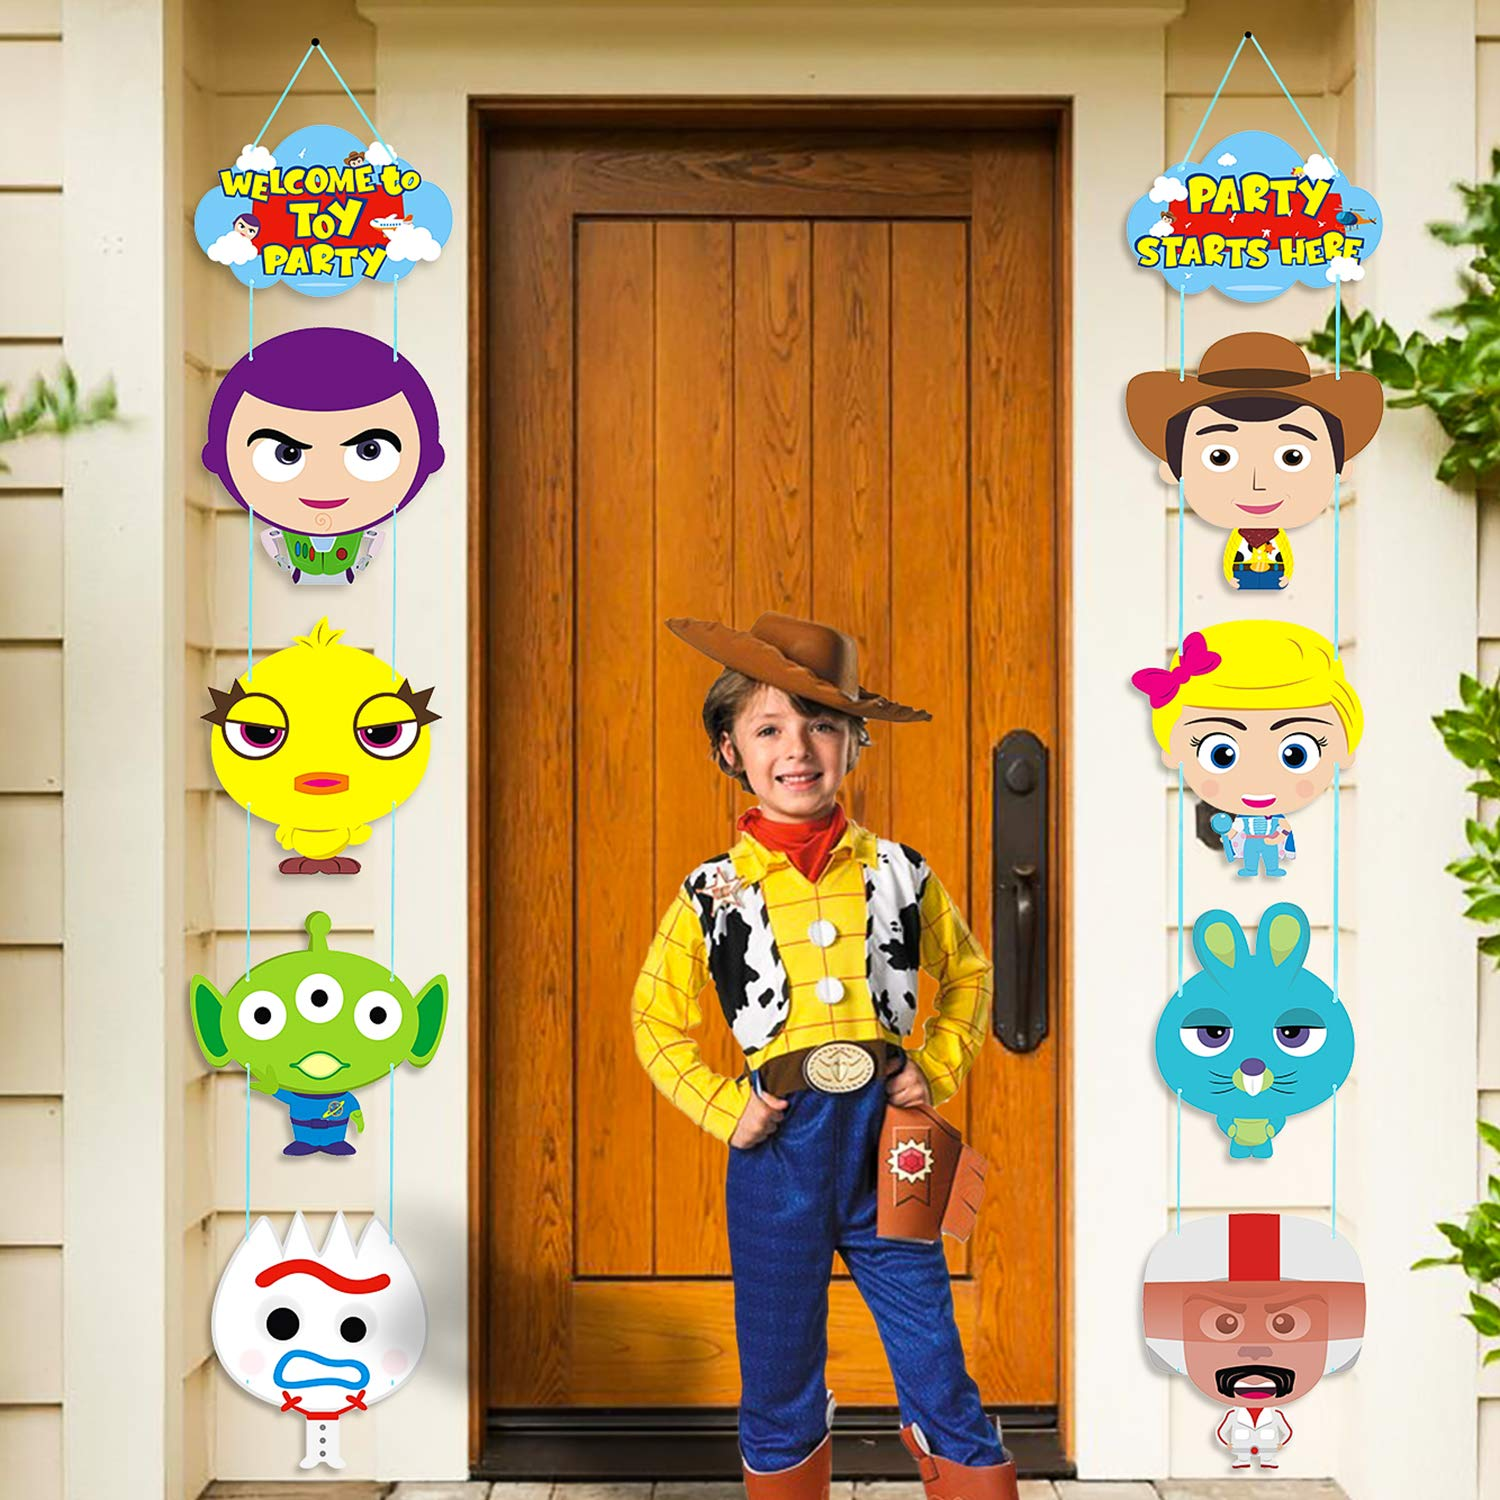 TICIAGA 10pcs Toy Inspired Story Porch Sign, Hanging Sign Wall Decoration Toy 4th Party Banner, Door Cardborad Cutout Signs Outdoor Decoration, Hanging Cards Kit for Toy 4th Theme Party Decoration